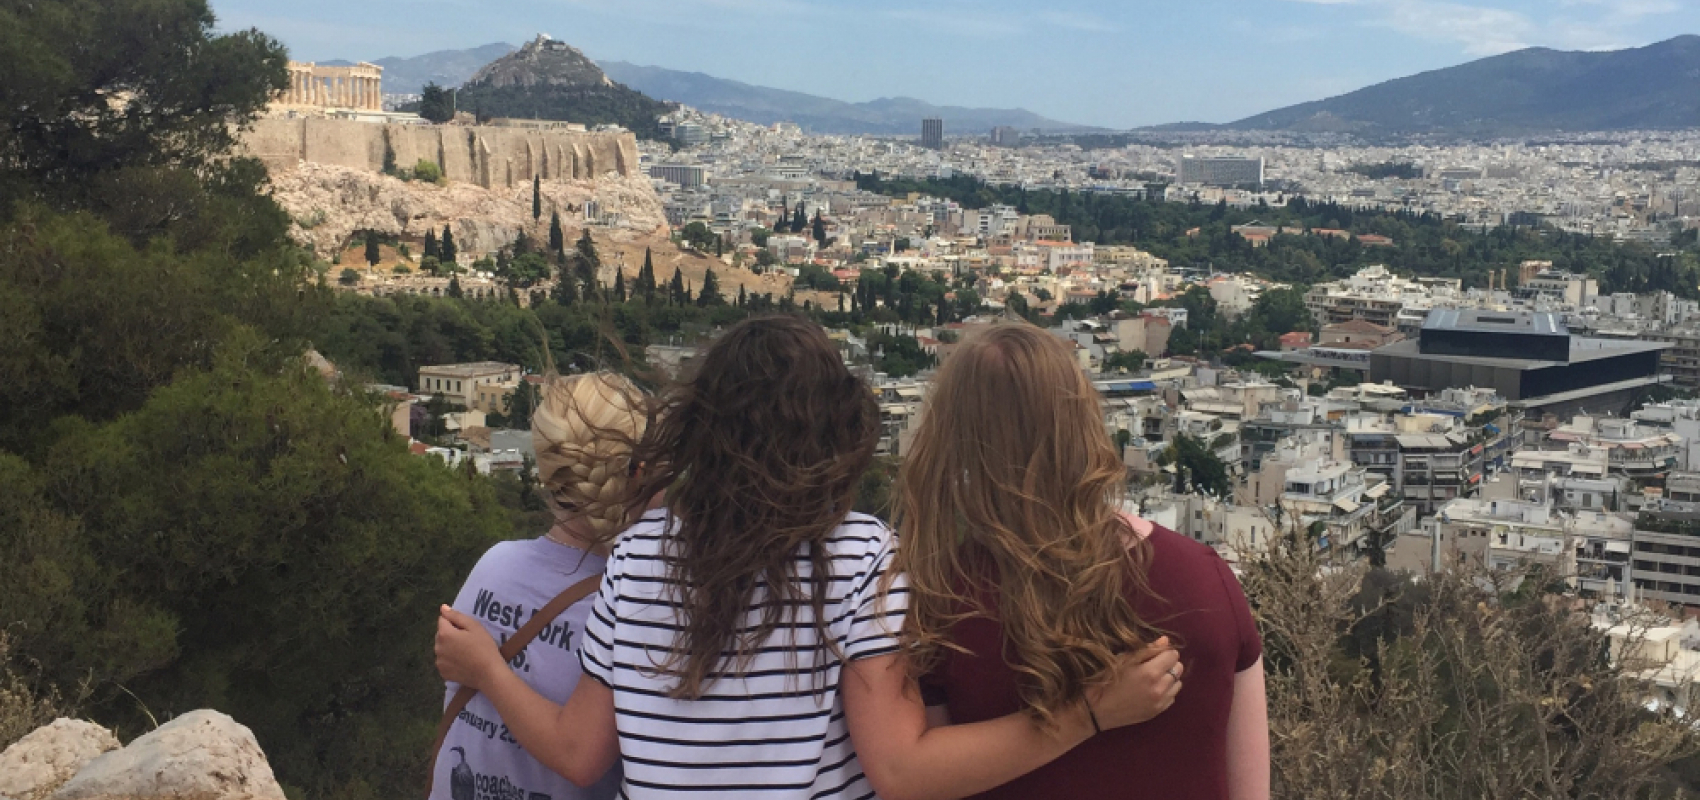 Students overlooking Athens